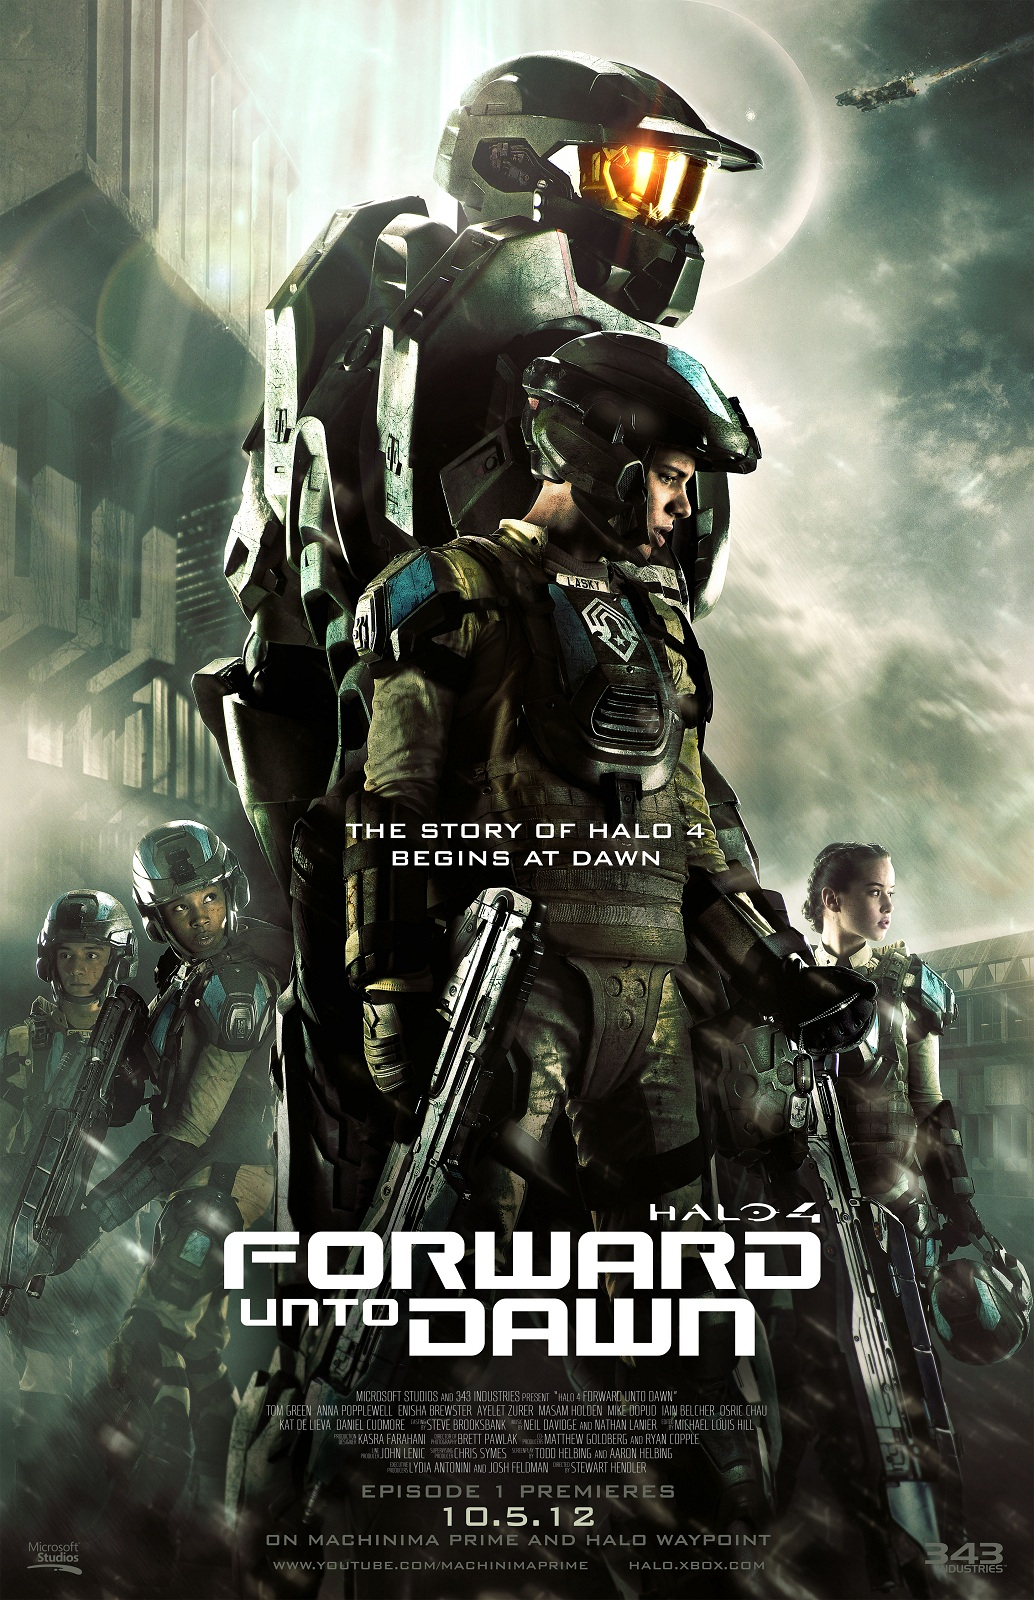 Serie Halo 4 Forward Unto Dawn Legendado